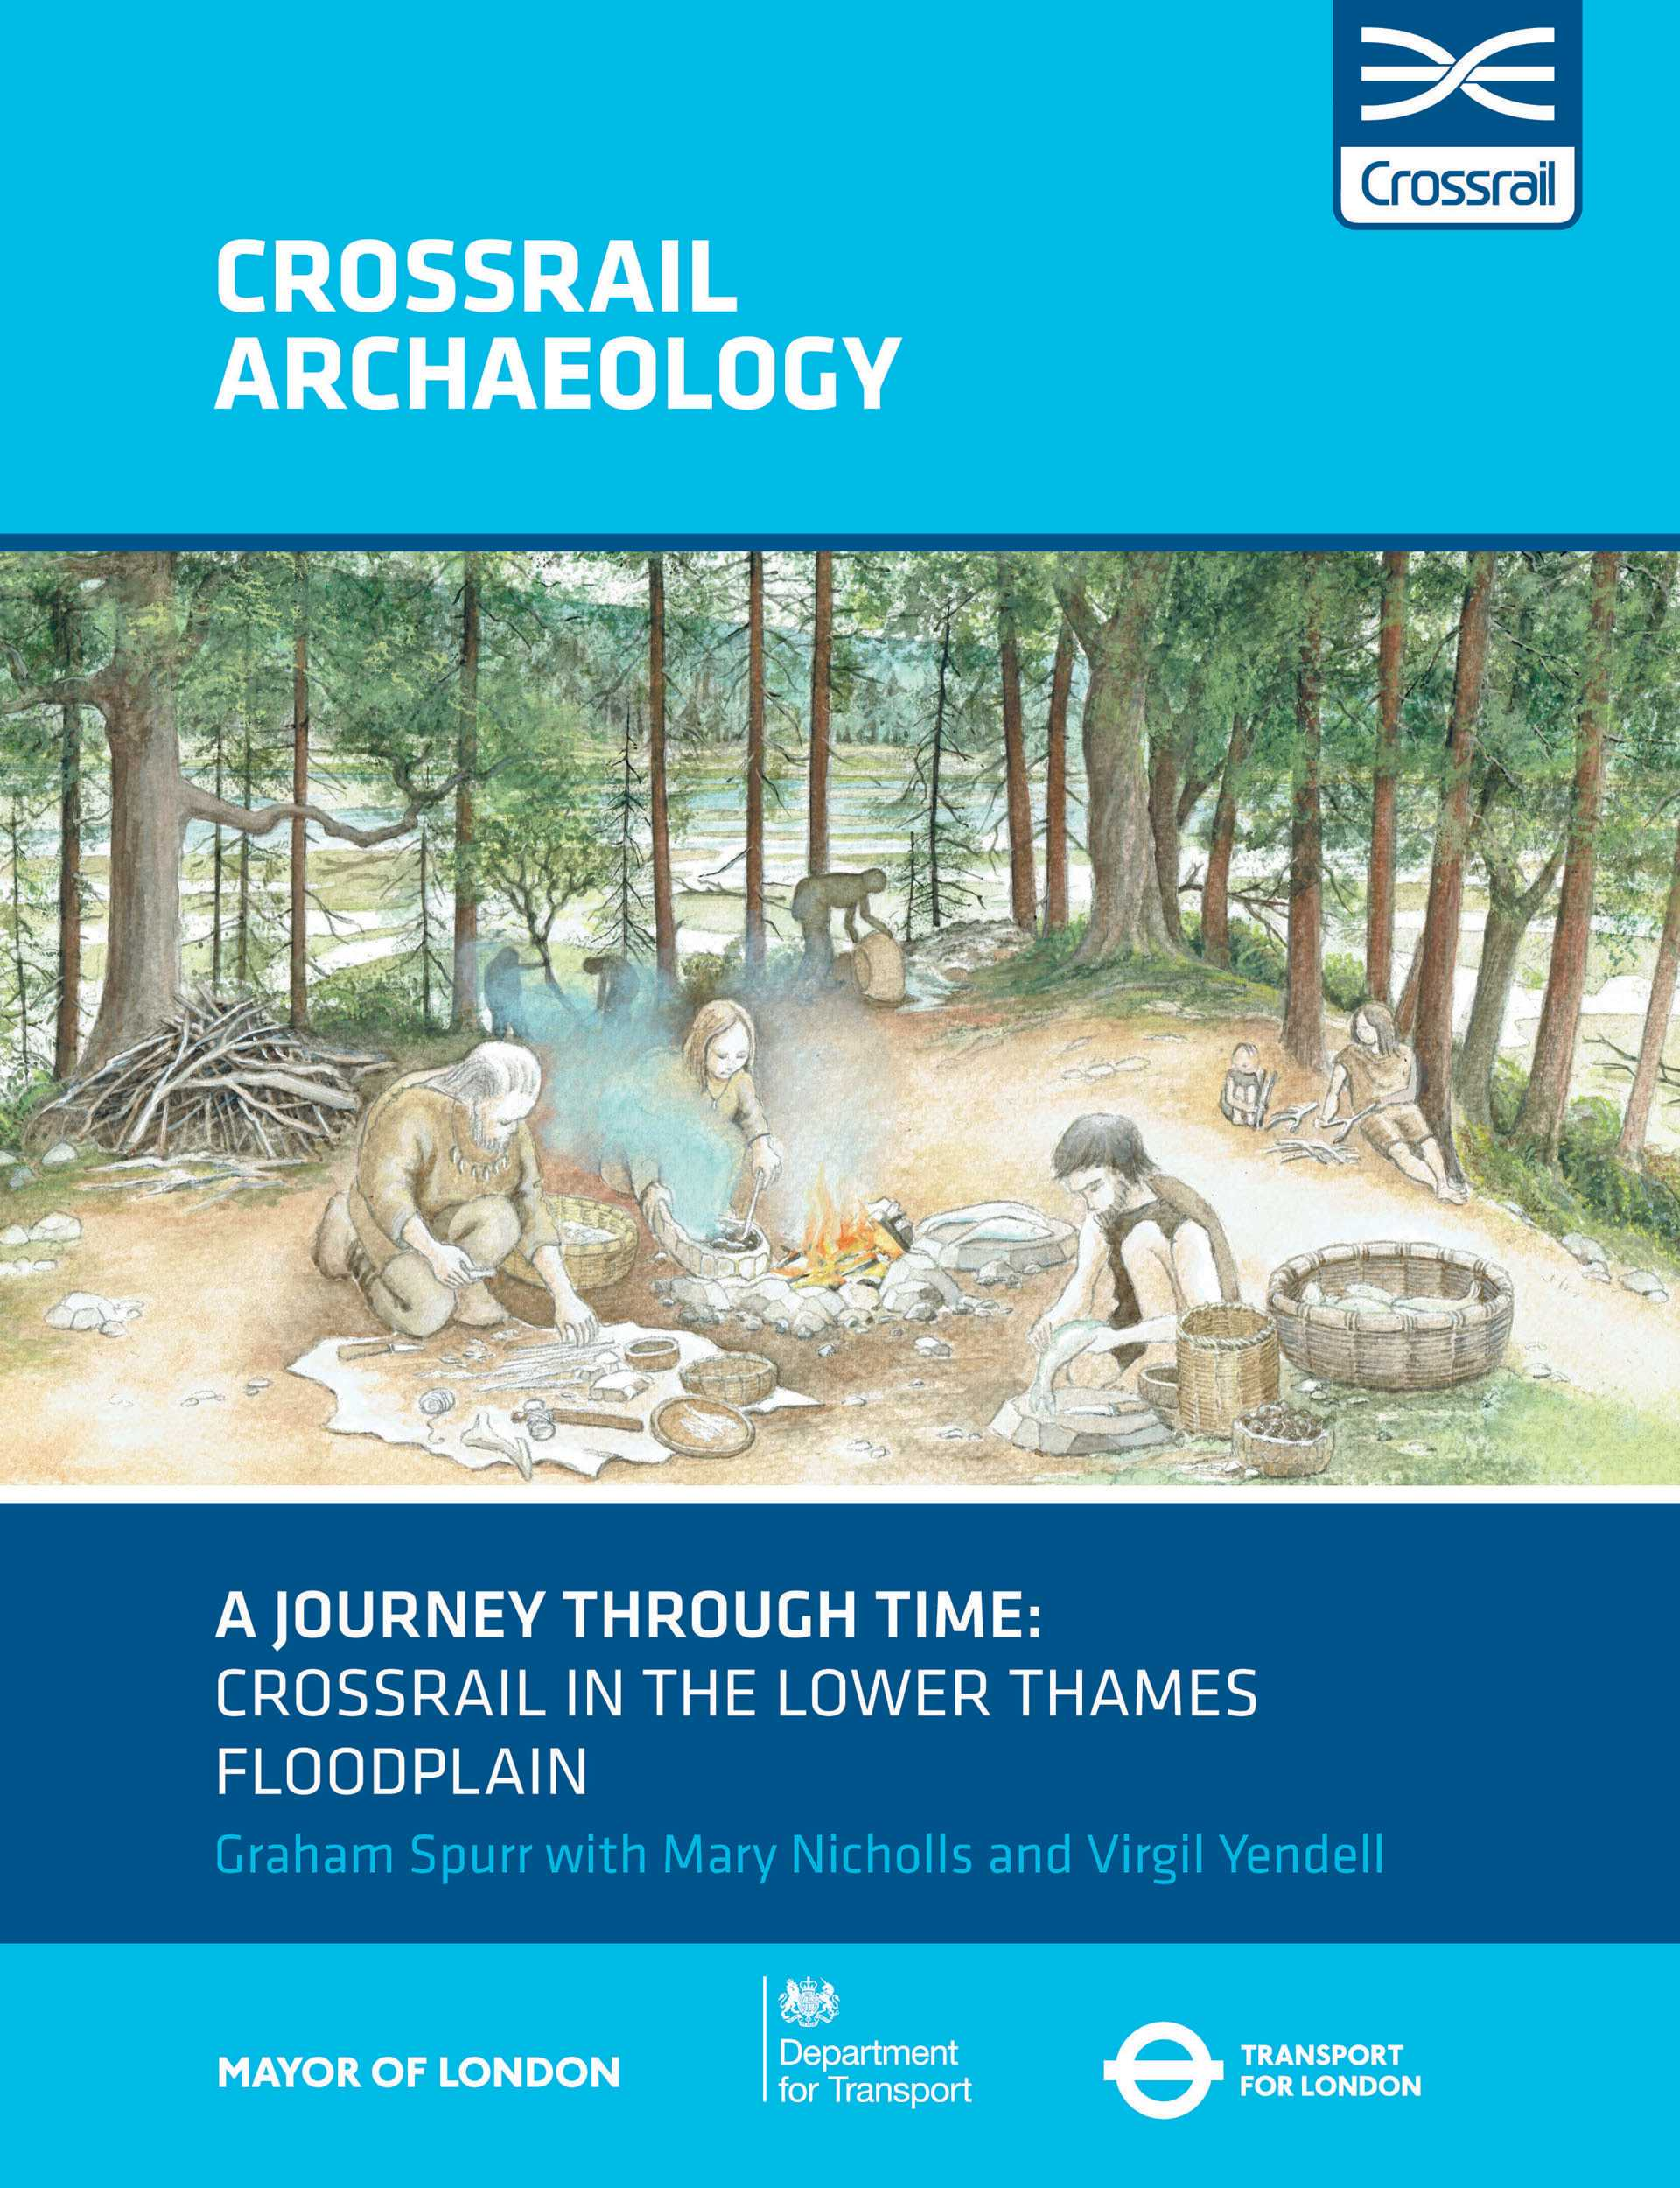 Crossrail archaeology - A Journey Through Time cover_292050